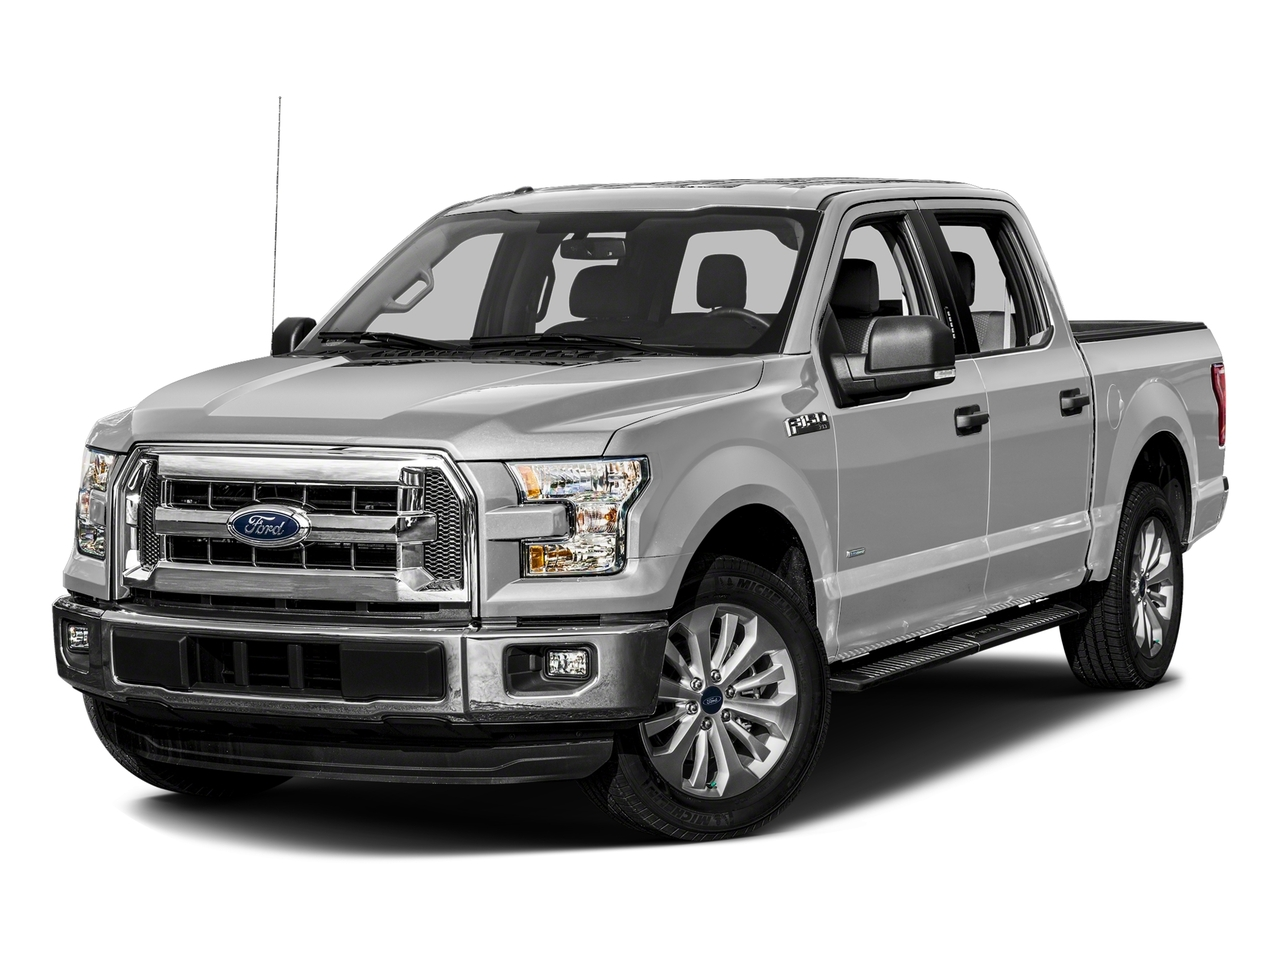 "2016 Ford F-150 4WD SUPERCREW 145"" XLT Crew Cab Pickup Slide"